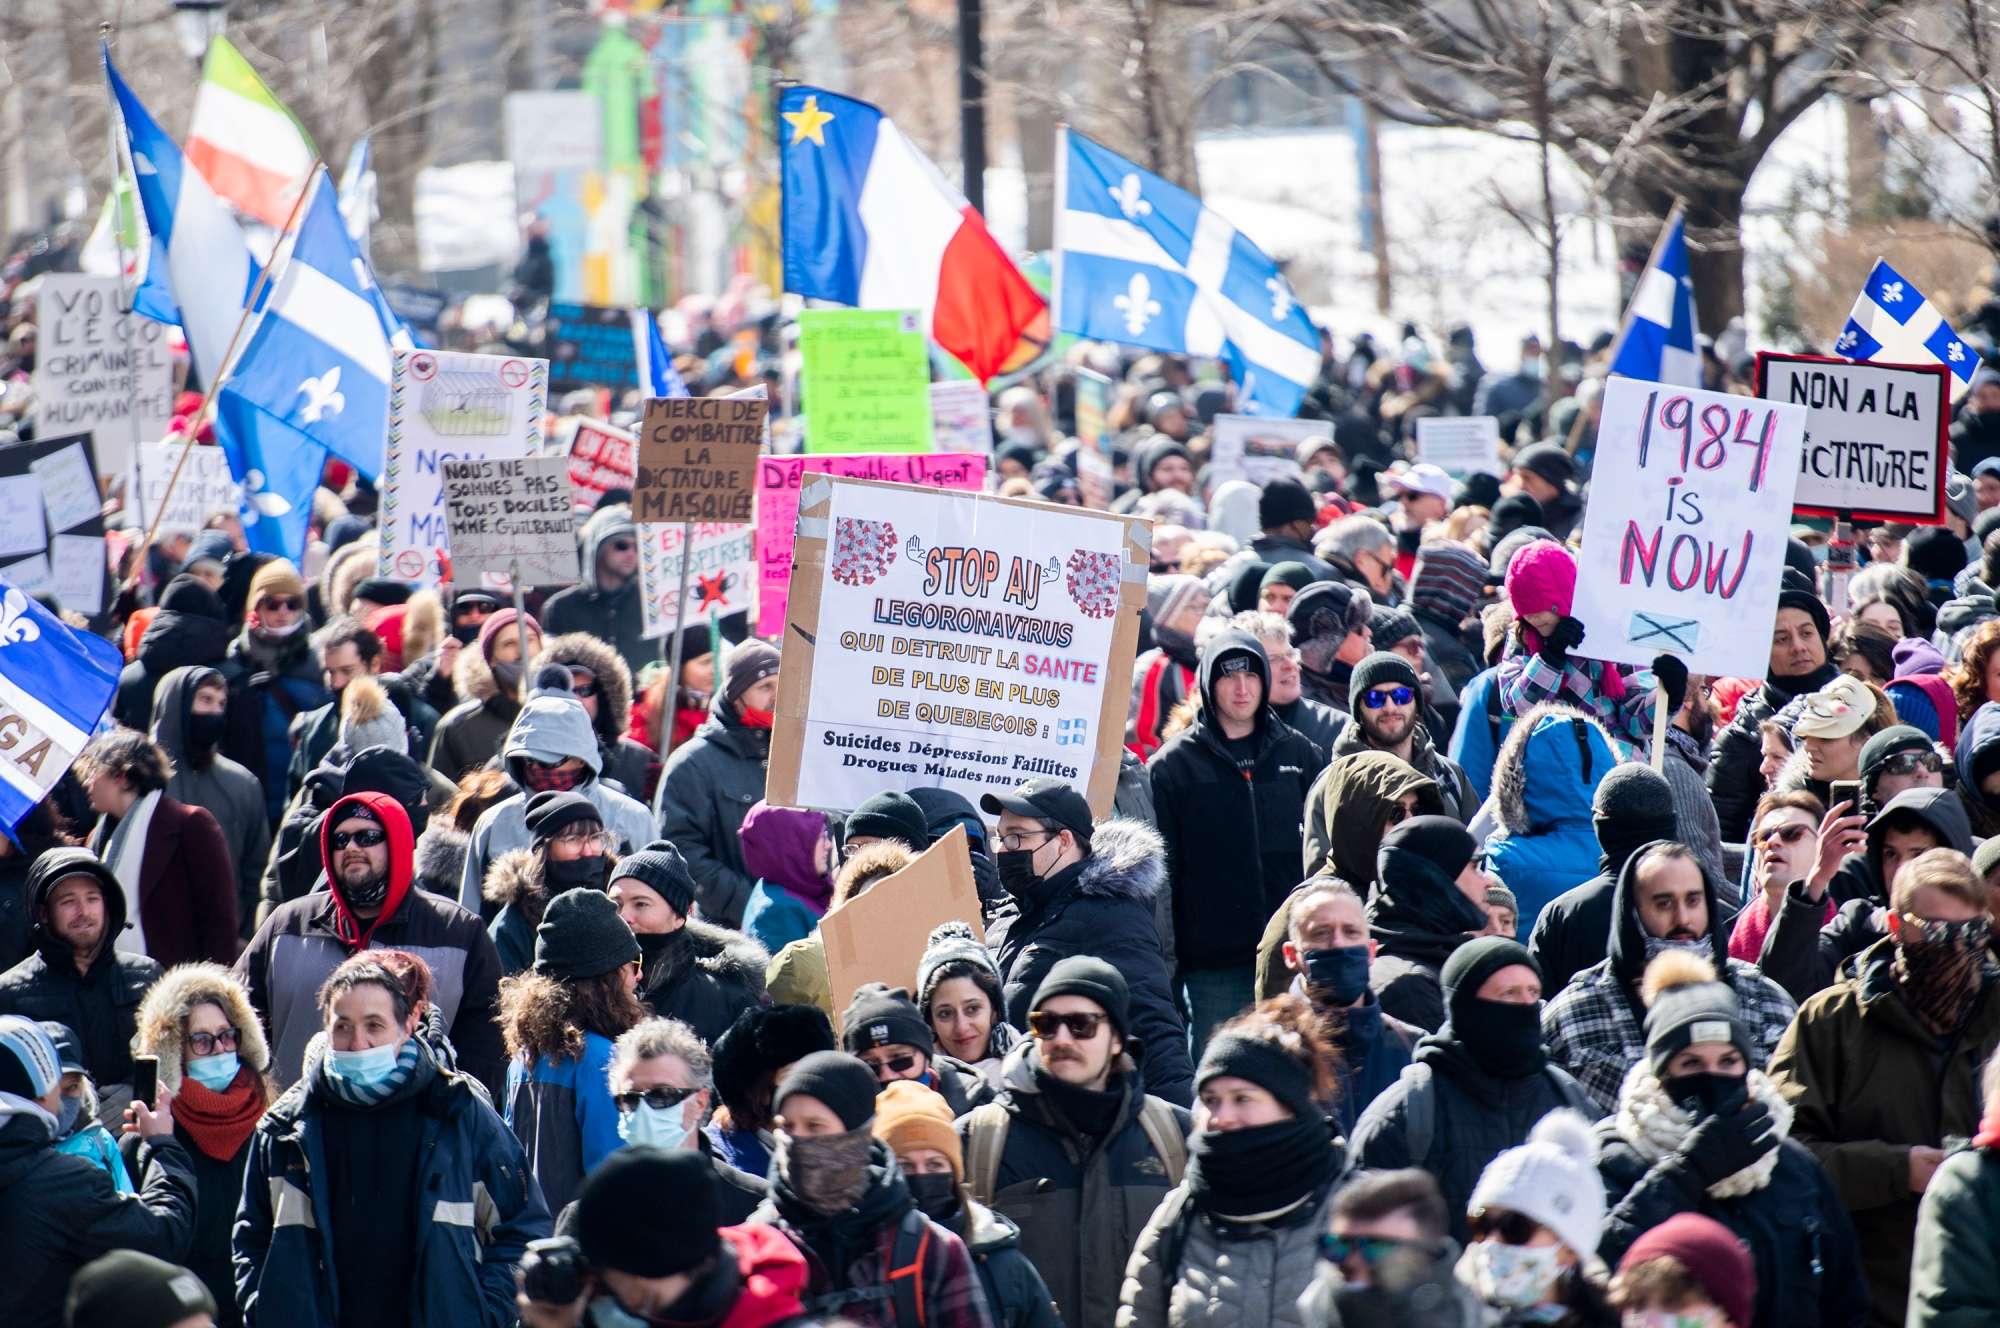 People take part in a demonstration to oppose government restrictions to curb the spread of Covid-19 in Montreal, Saturday, March 13, 2021.